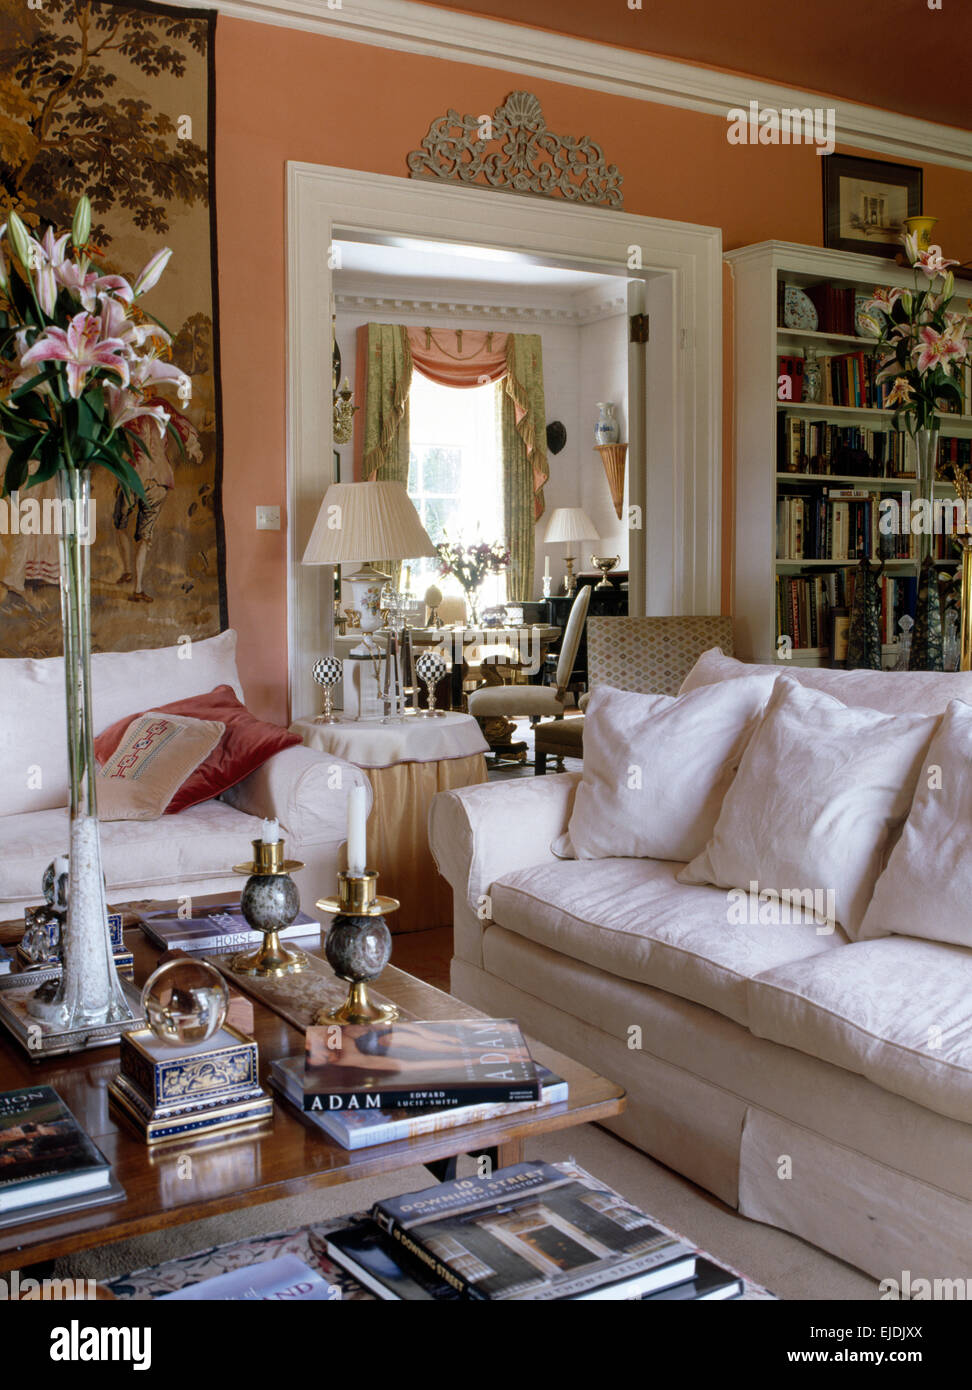 White sofas in traditional peach sitting room with pink lilies in a tall glass vase on the coffee table - Stock Image